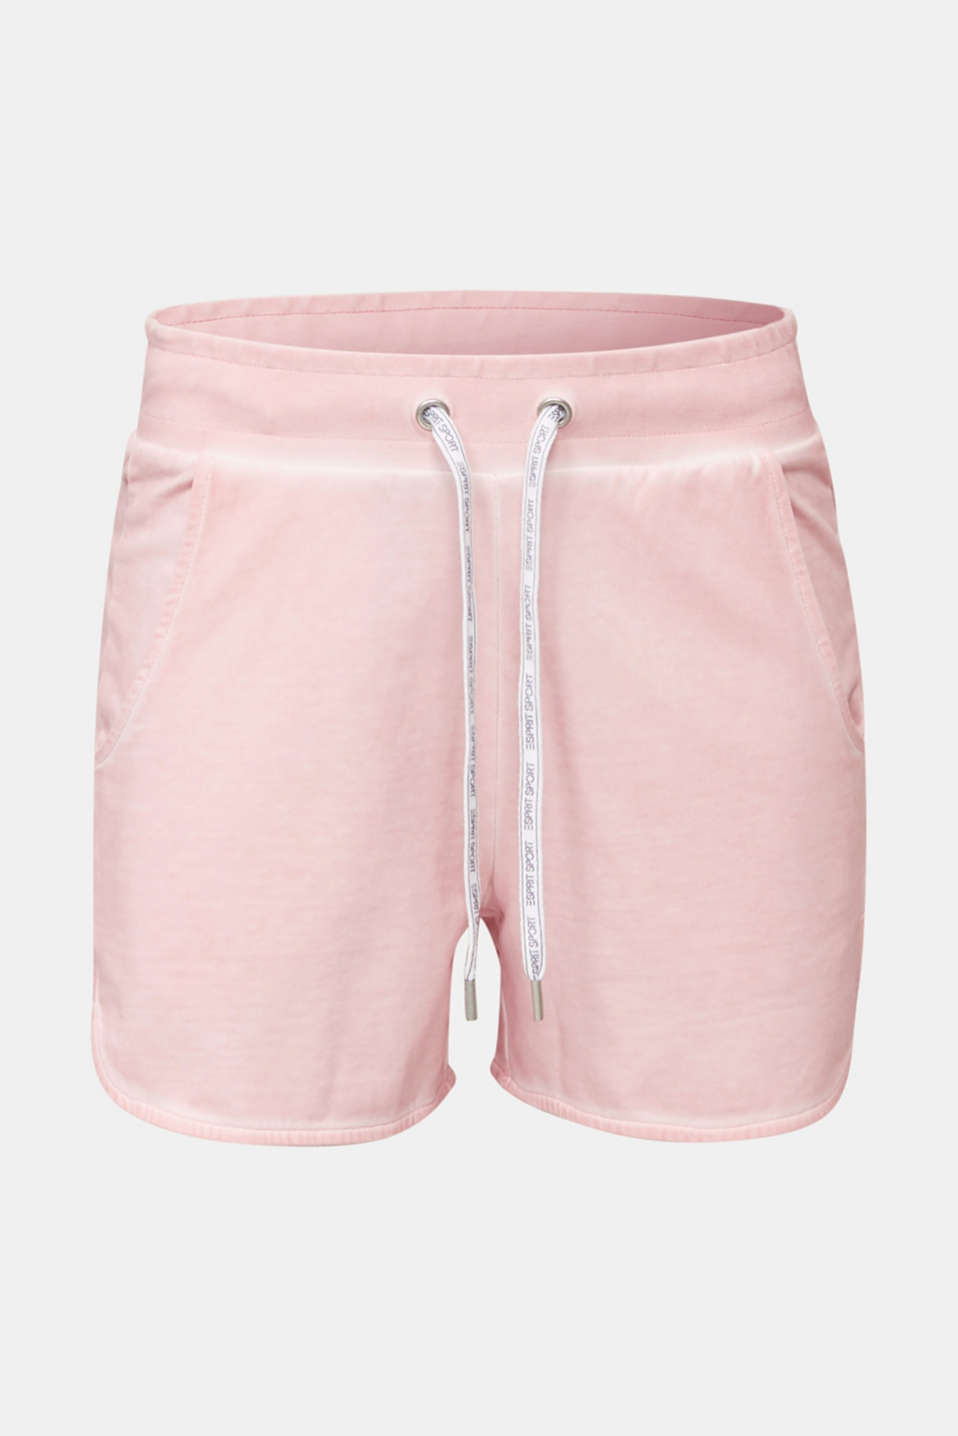 Stretch jersey shorts in a vintage look, LIGHT PINK, detail image number 6